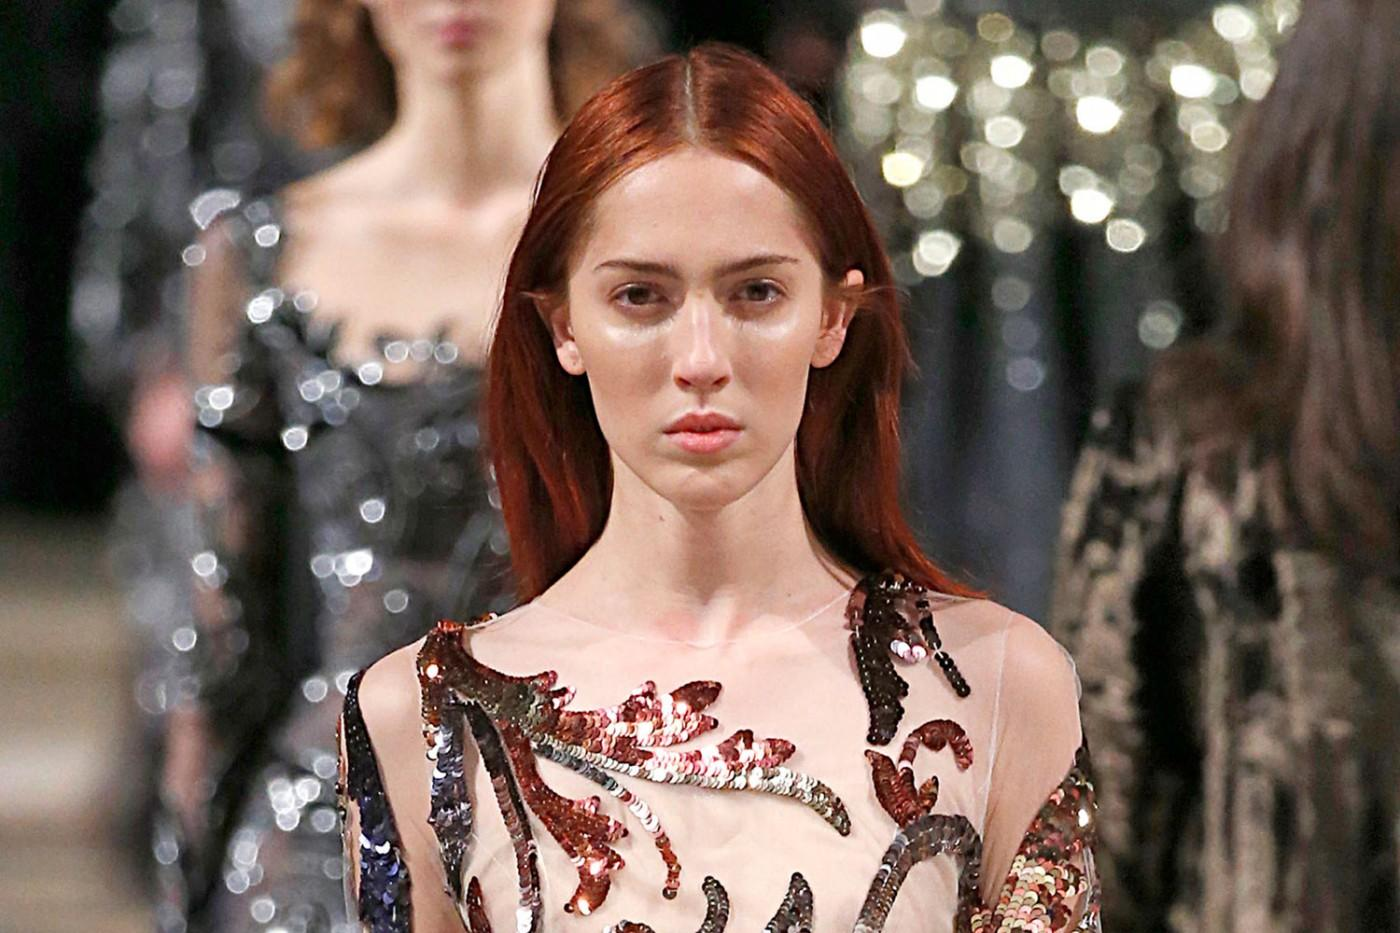 Watch Teddy Quinlivan video